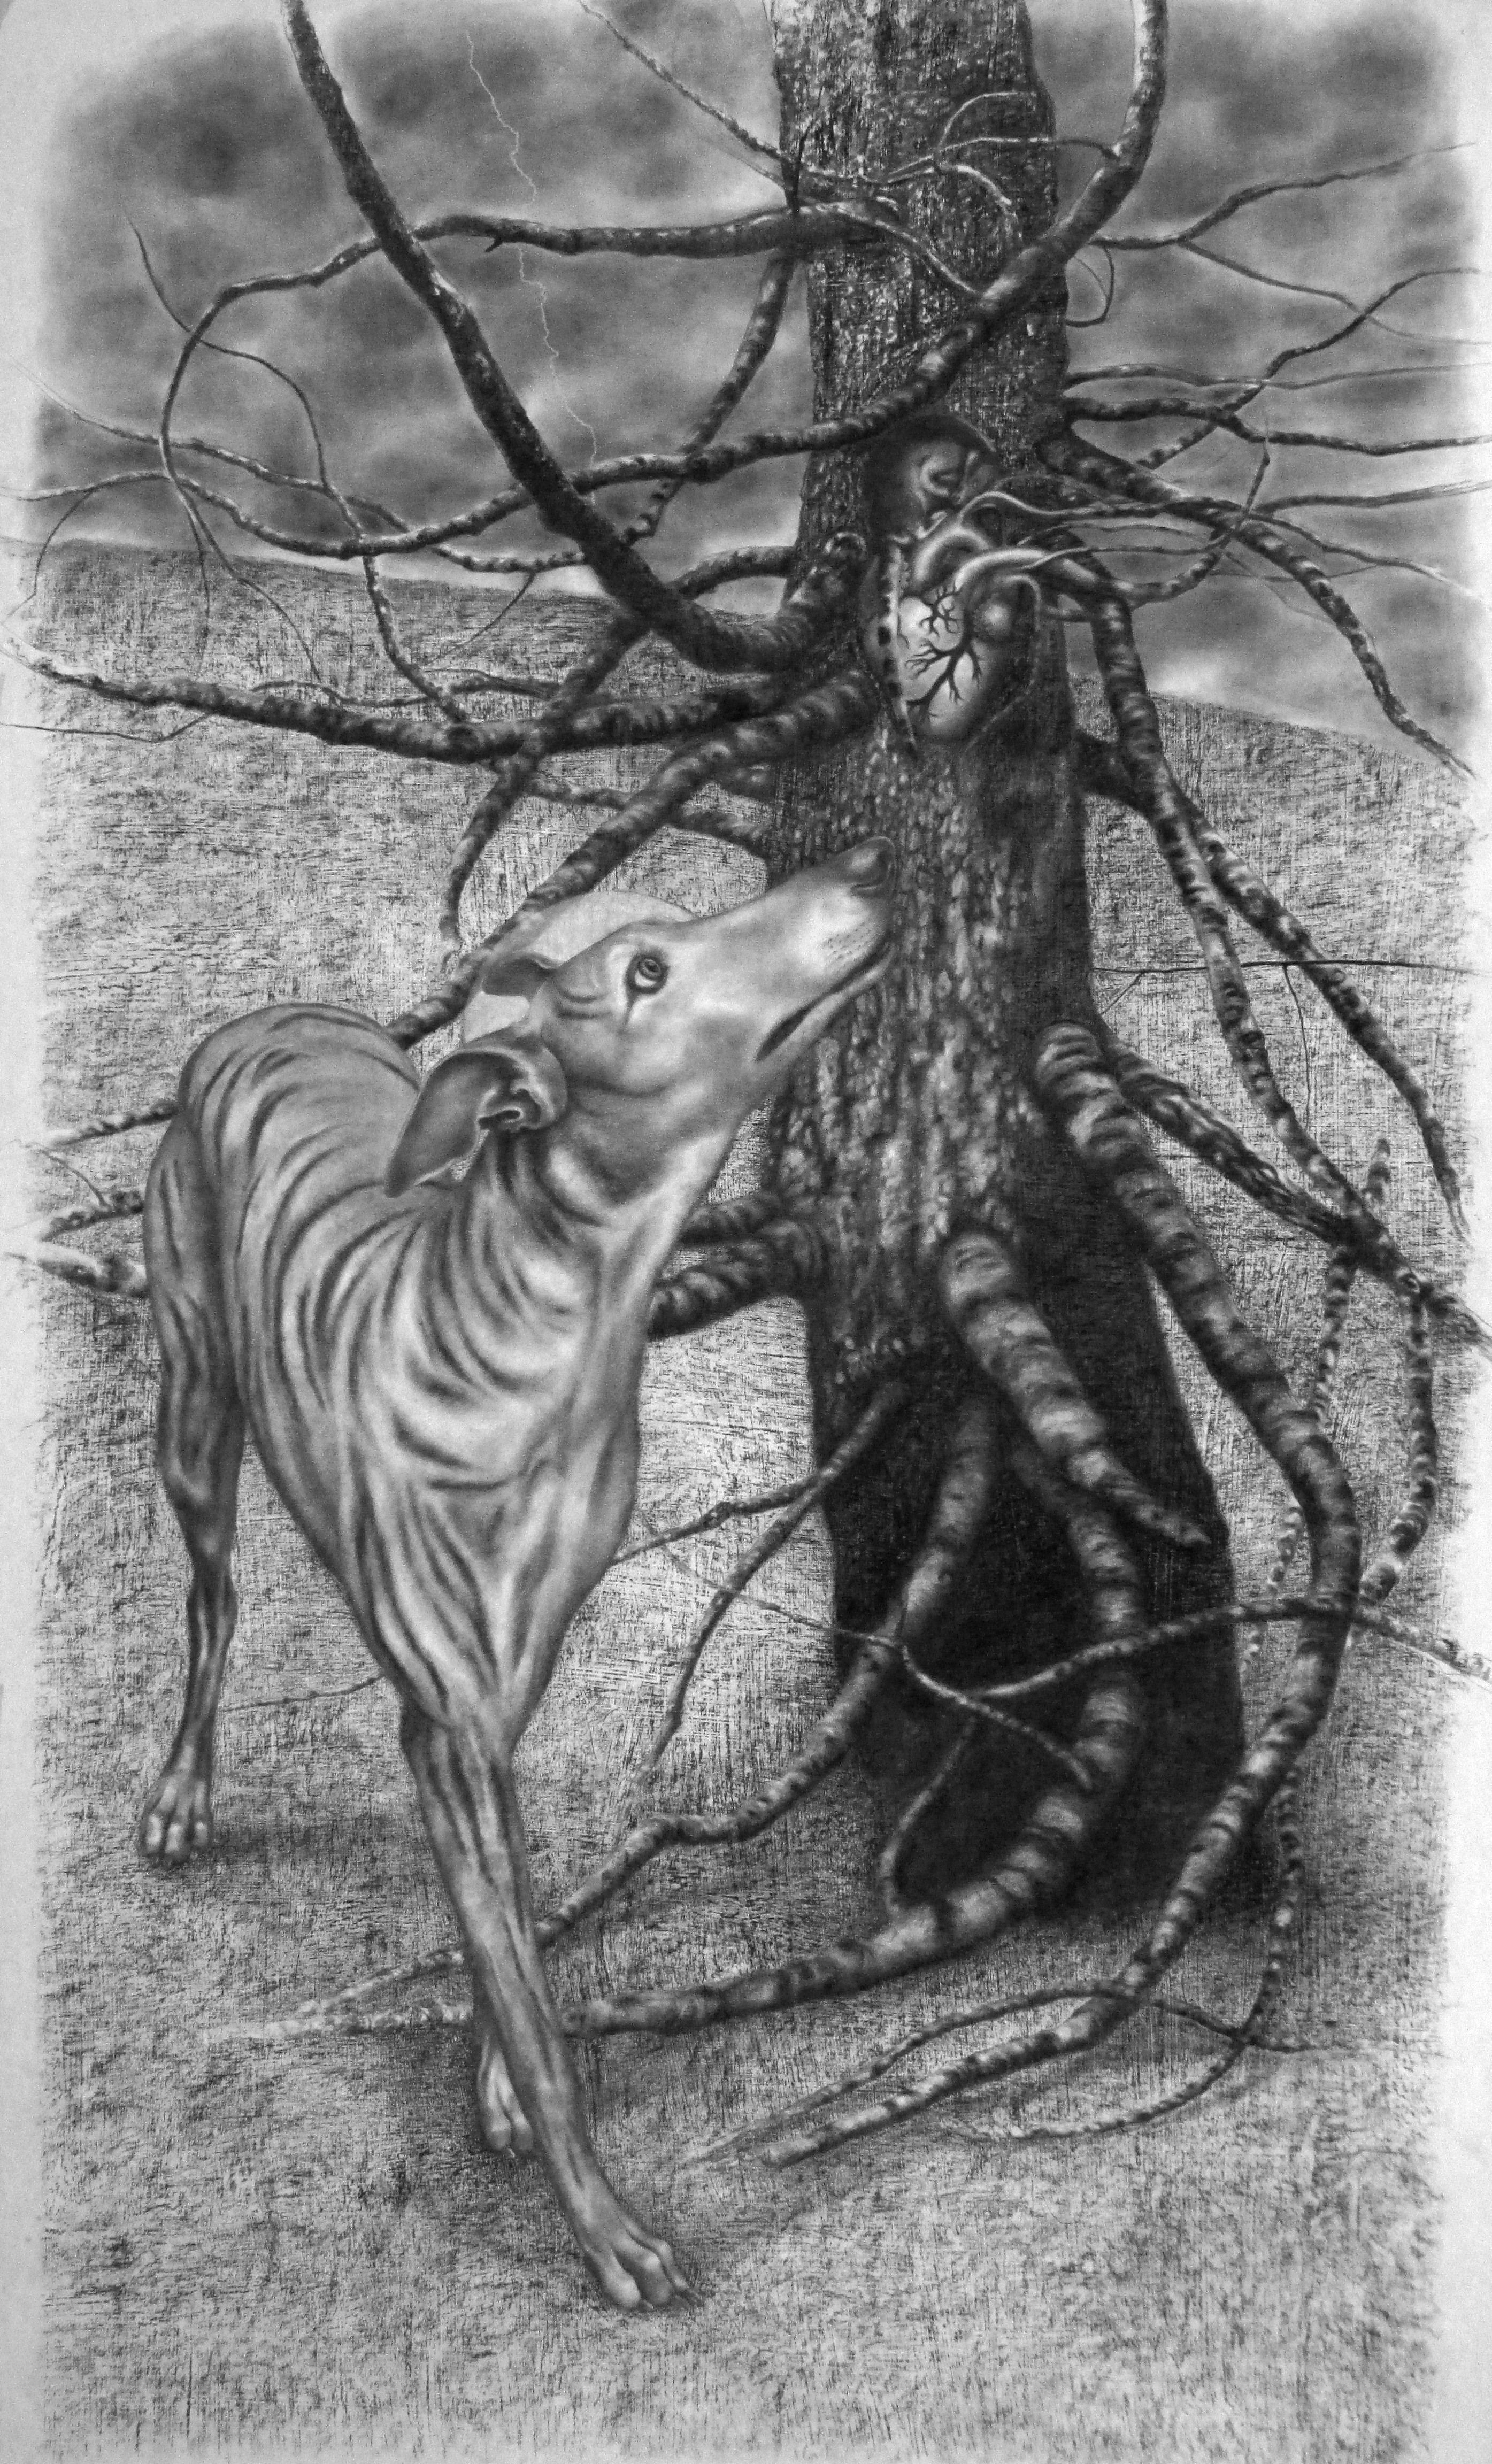 2015 - The Flicker and the Sentinel - (Cardiac Alert Dog - New Work of Dogs series) - charcoal on gessoes paper - 54 x 42